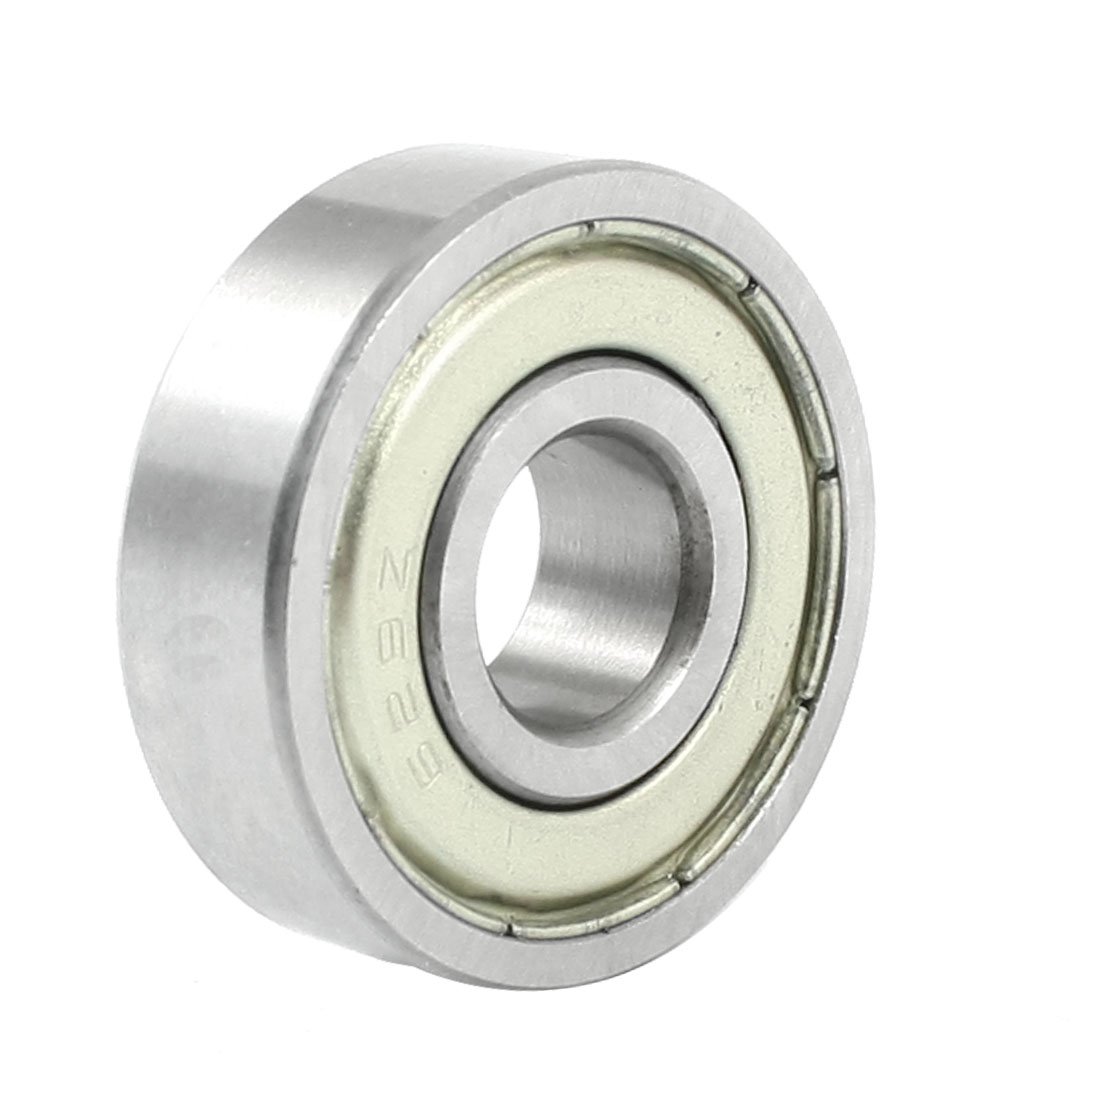 629Z Double Shielded Deep Groove Radial Ball Bearing 10x26x8mm